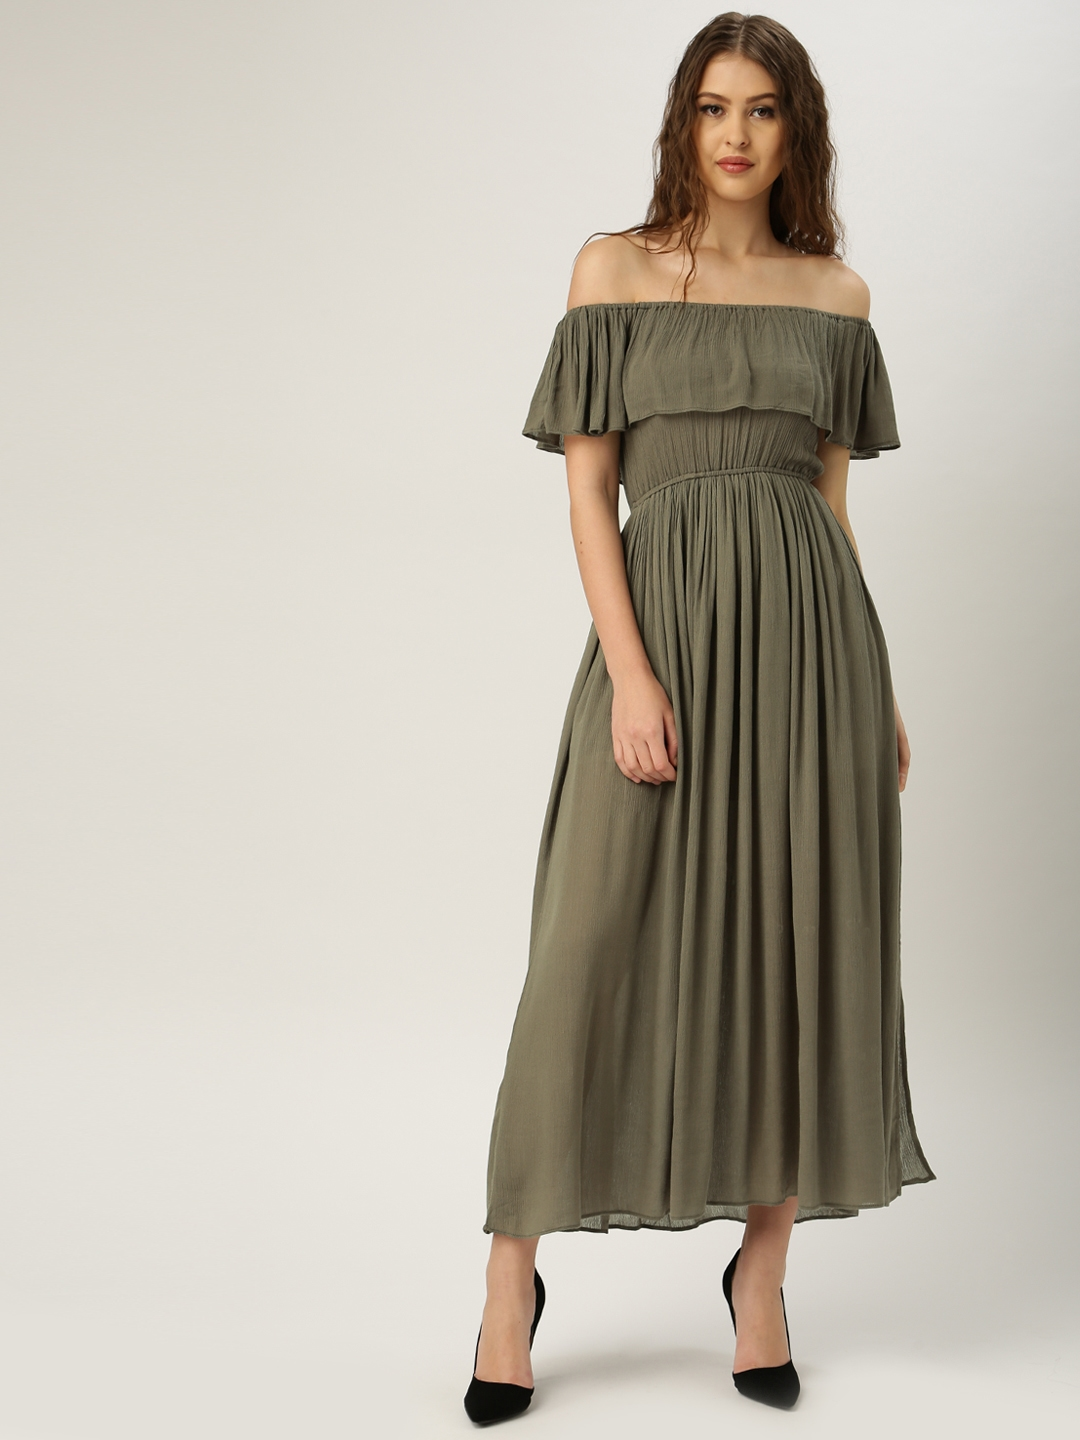 39120615255c all about you from Deepika Padukone Olive Green Solid Off-Shoulder Maxi  Dress